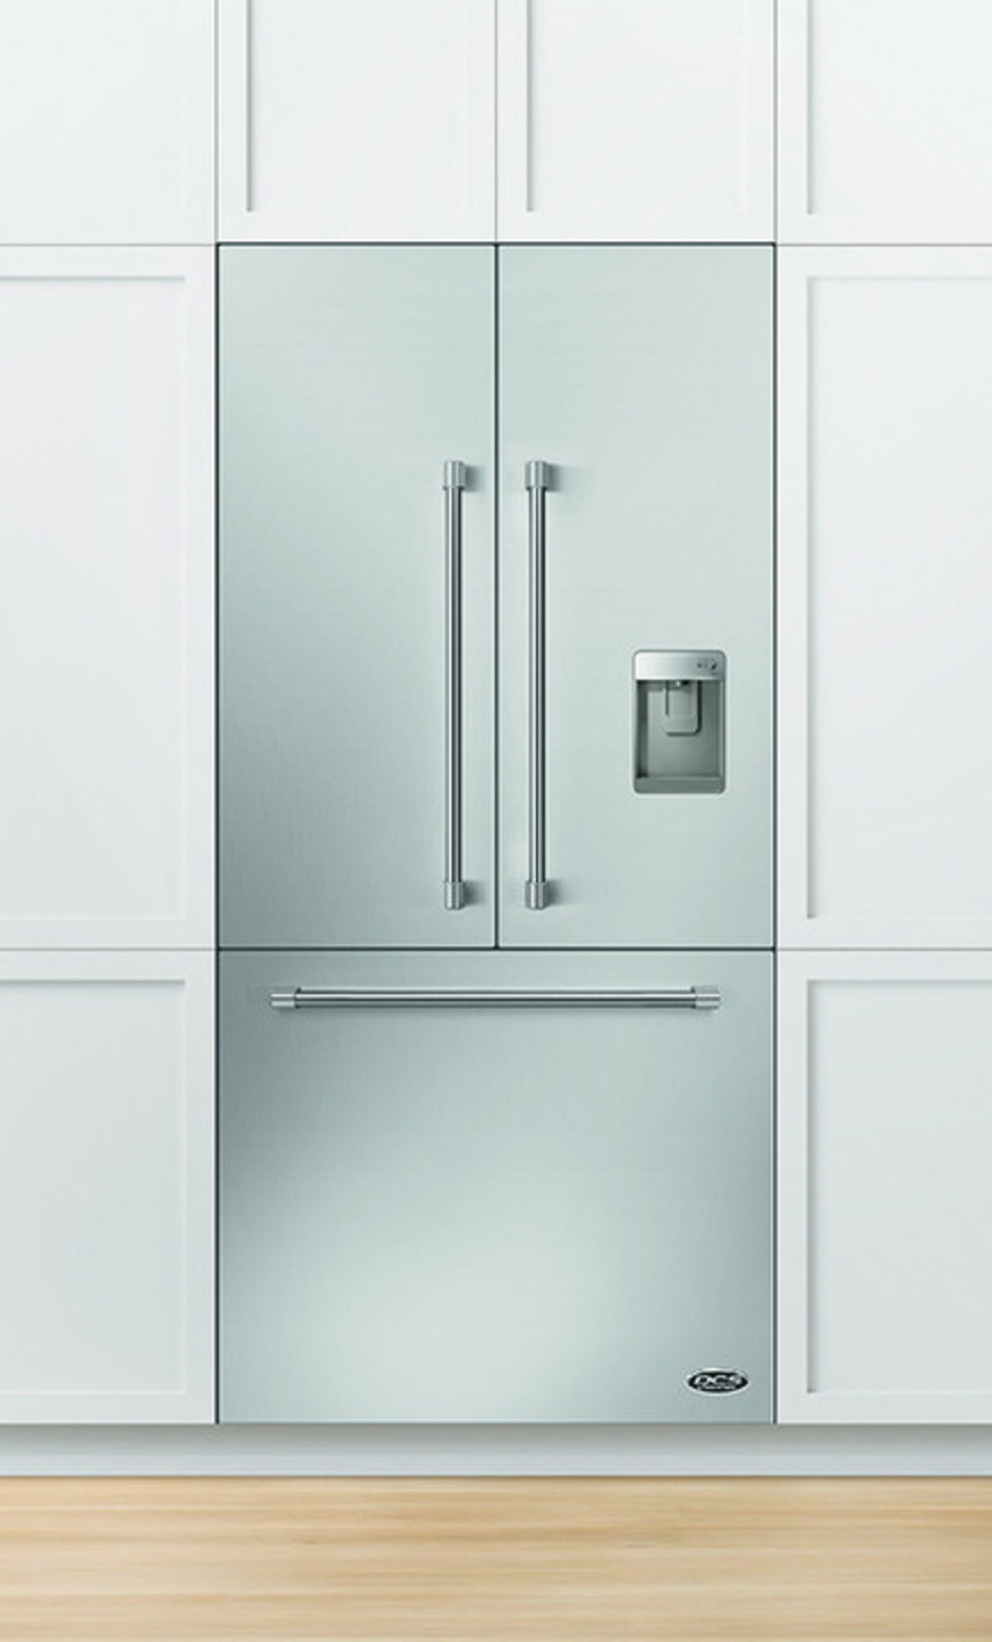 Fridges DCS RS36A80UC1 + RD3680CU (80'' DCS)